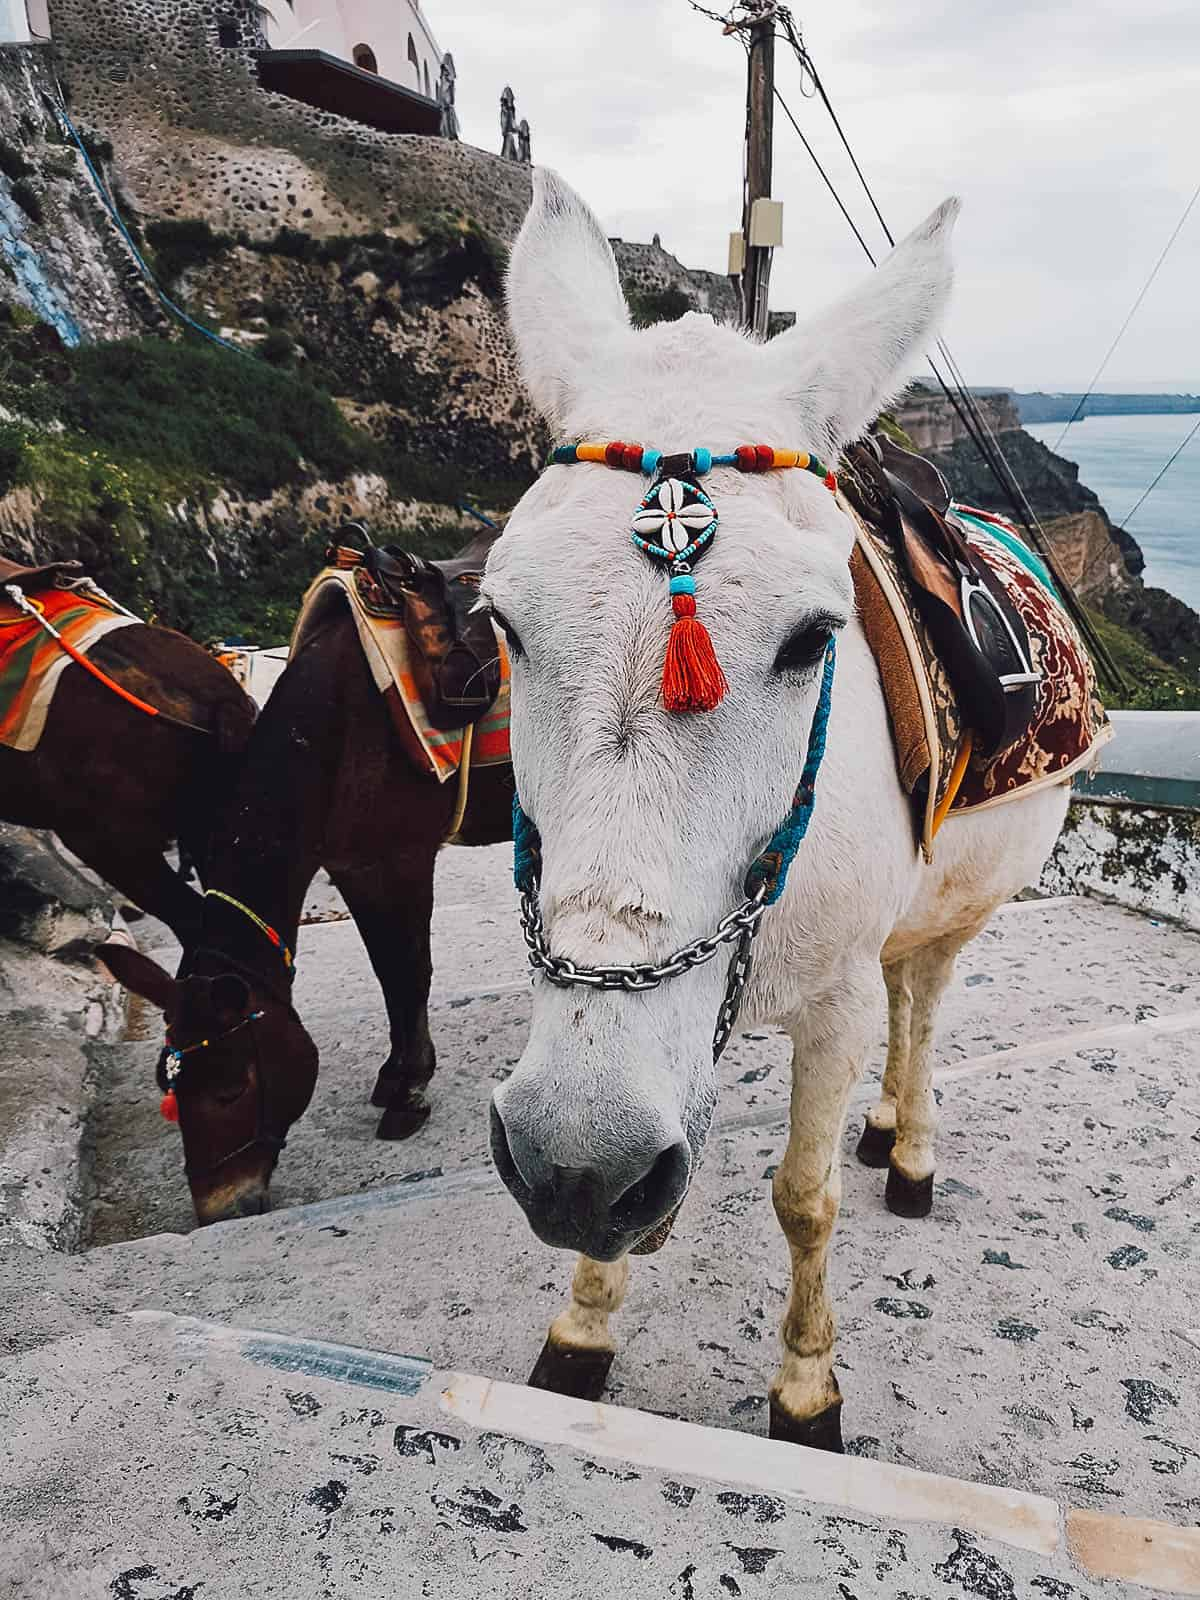 Donkeys in Fira, Santorini, Greece